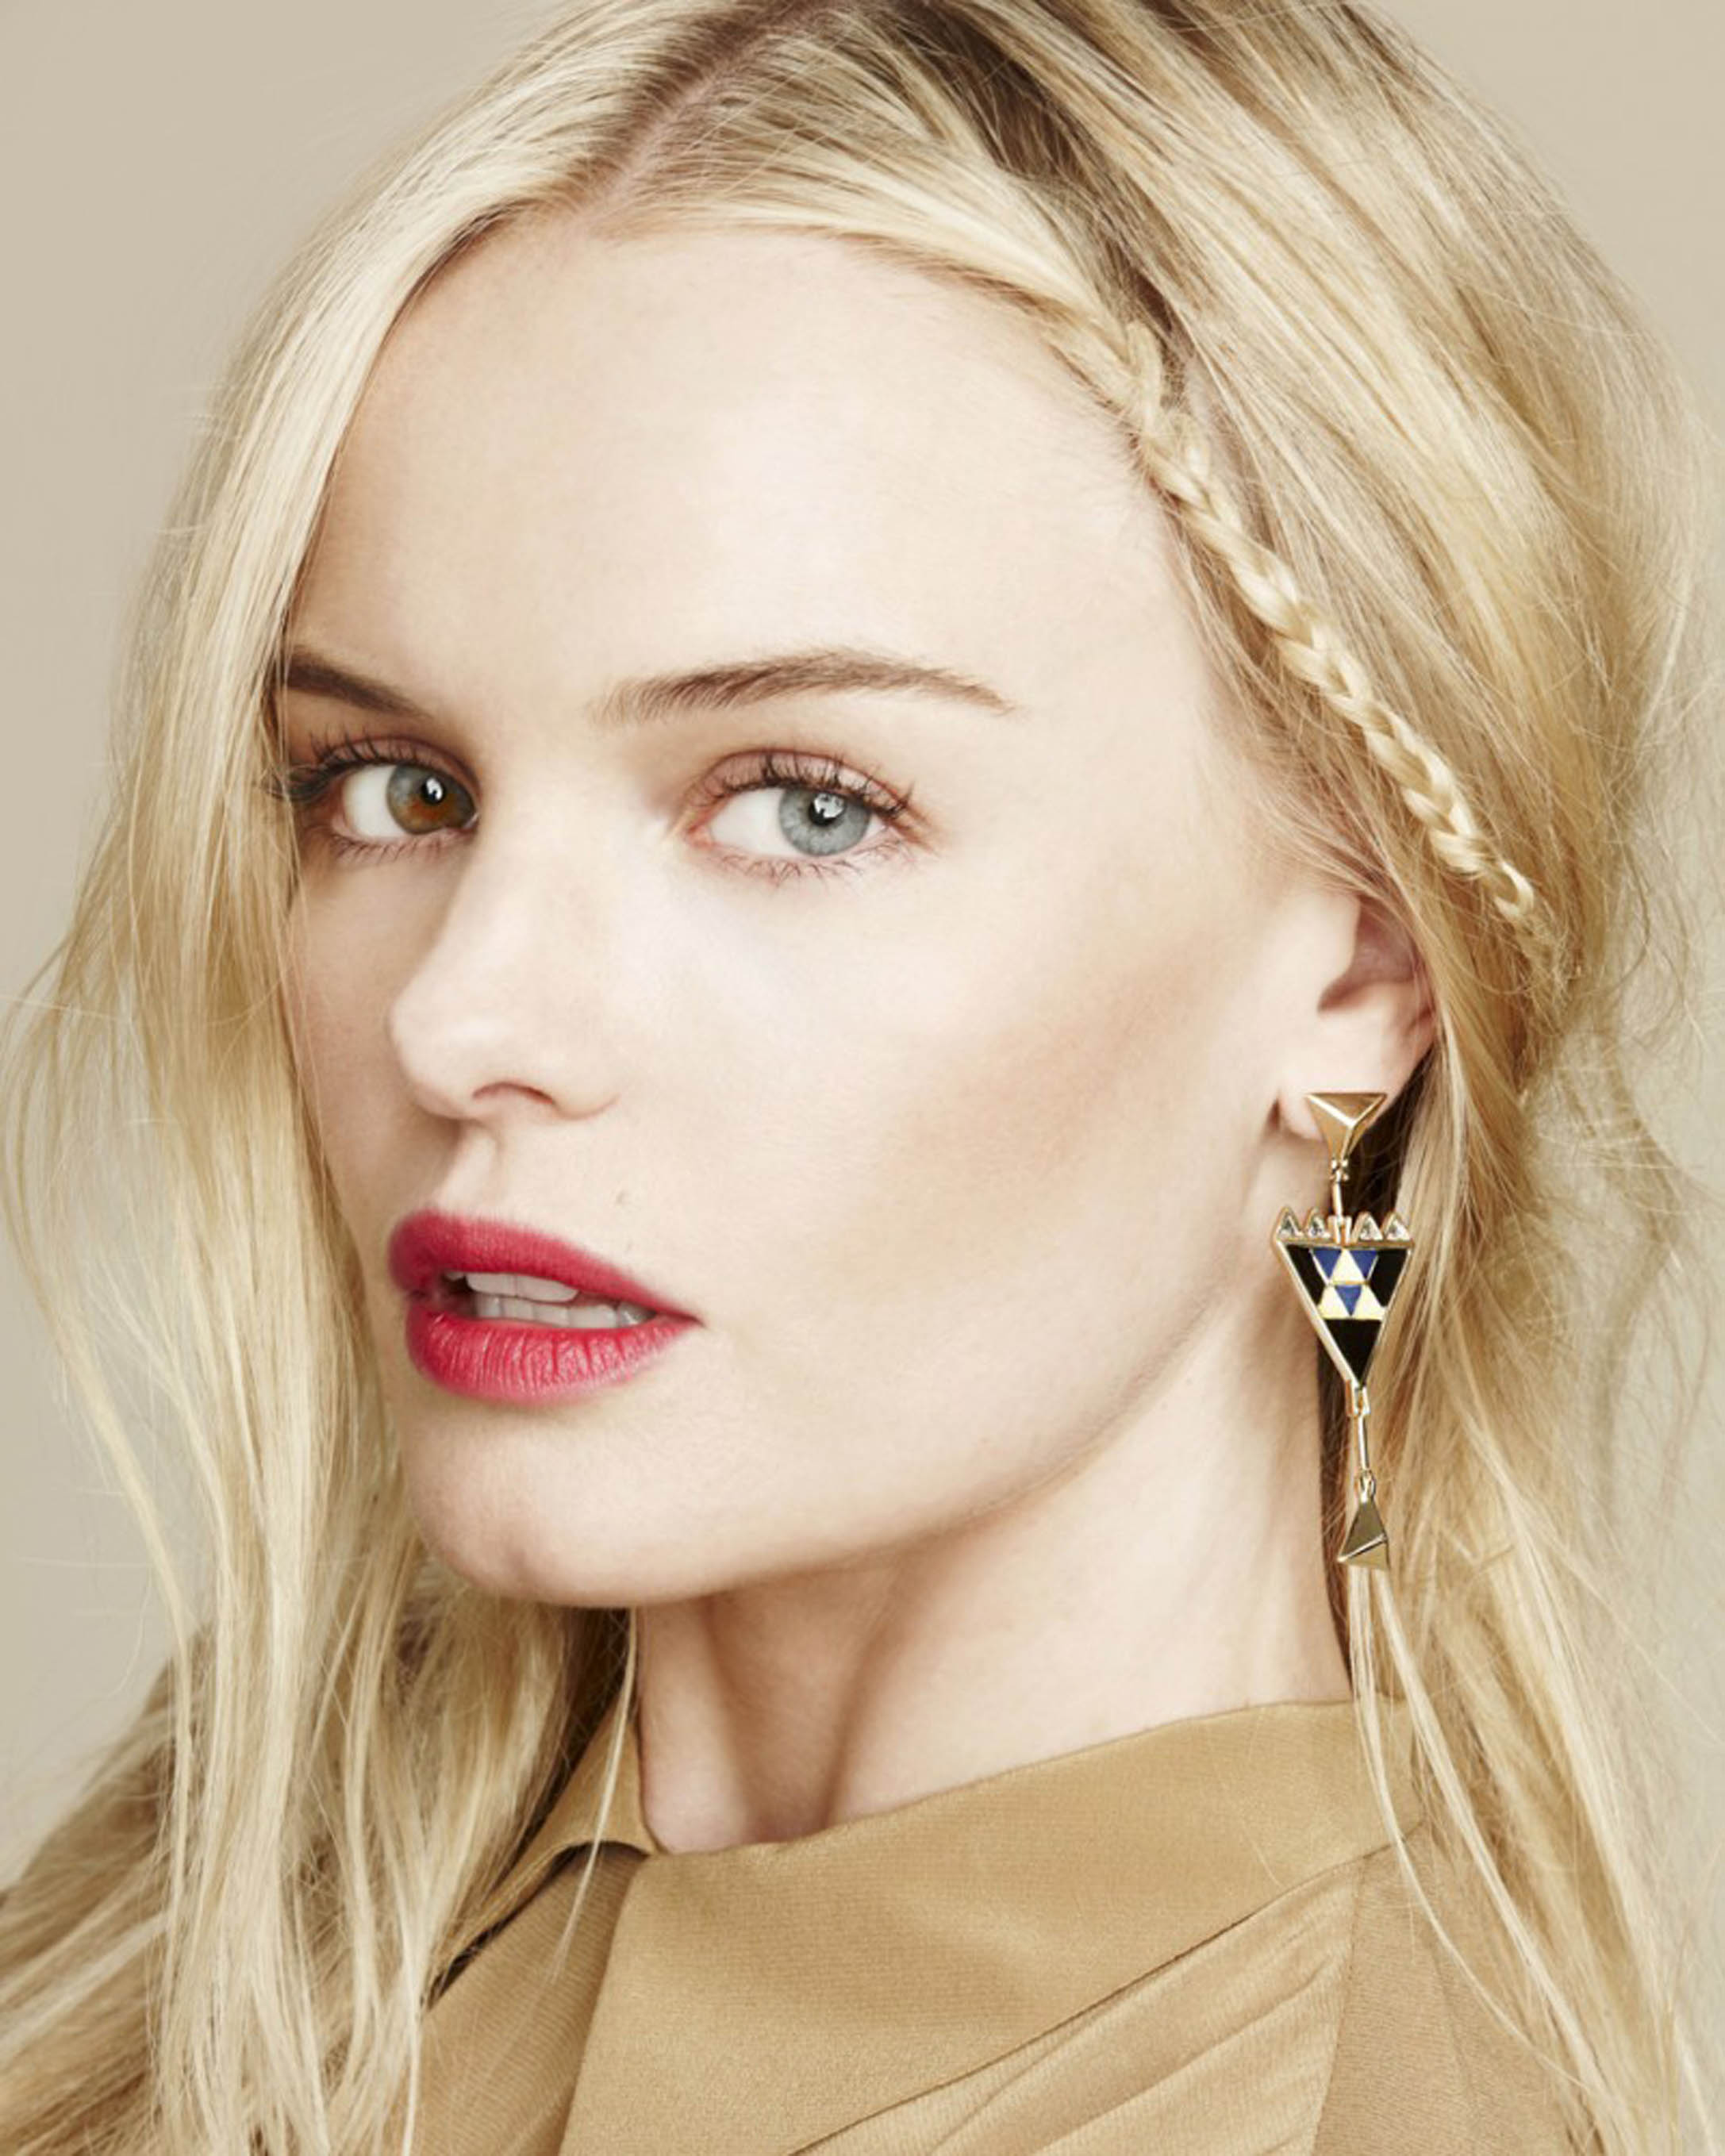 Movie actress Kate Bosworth - age: 34